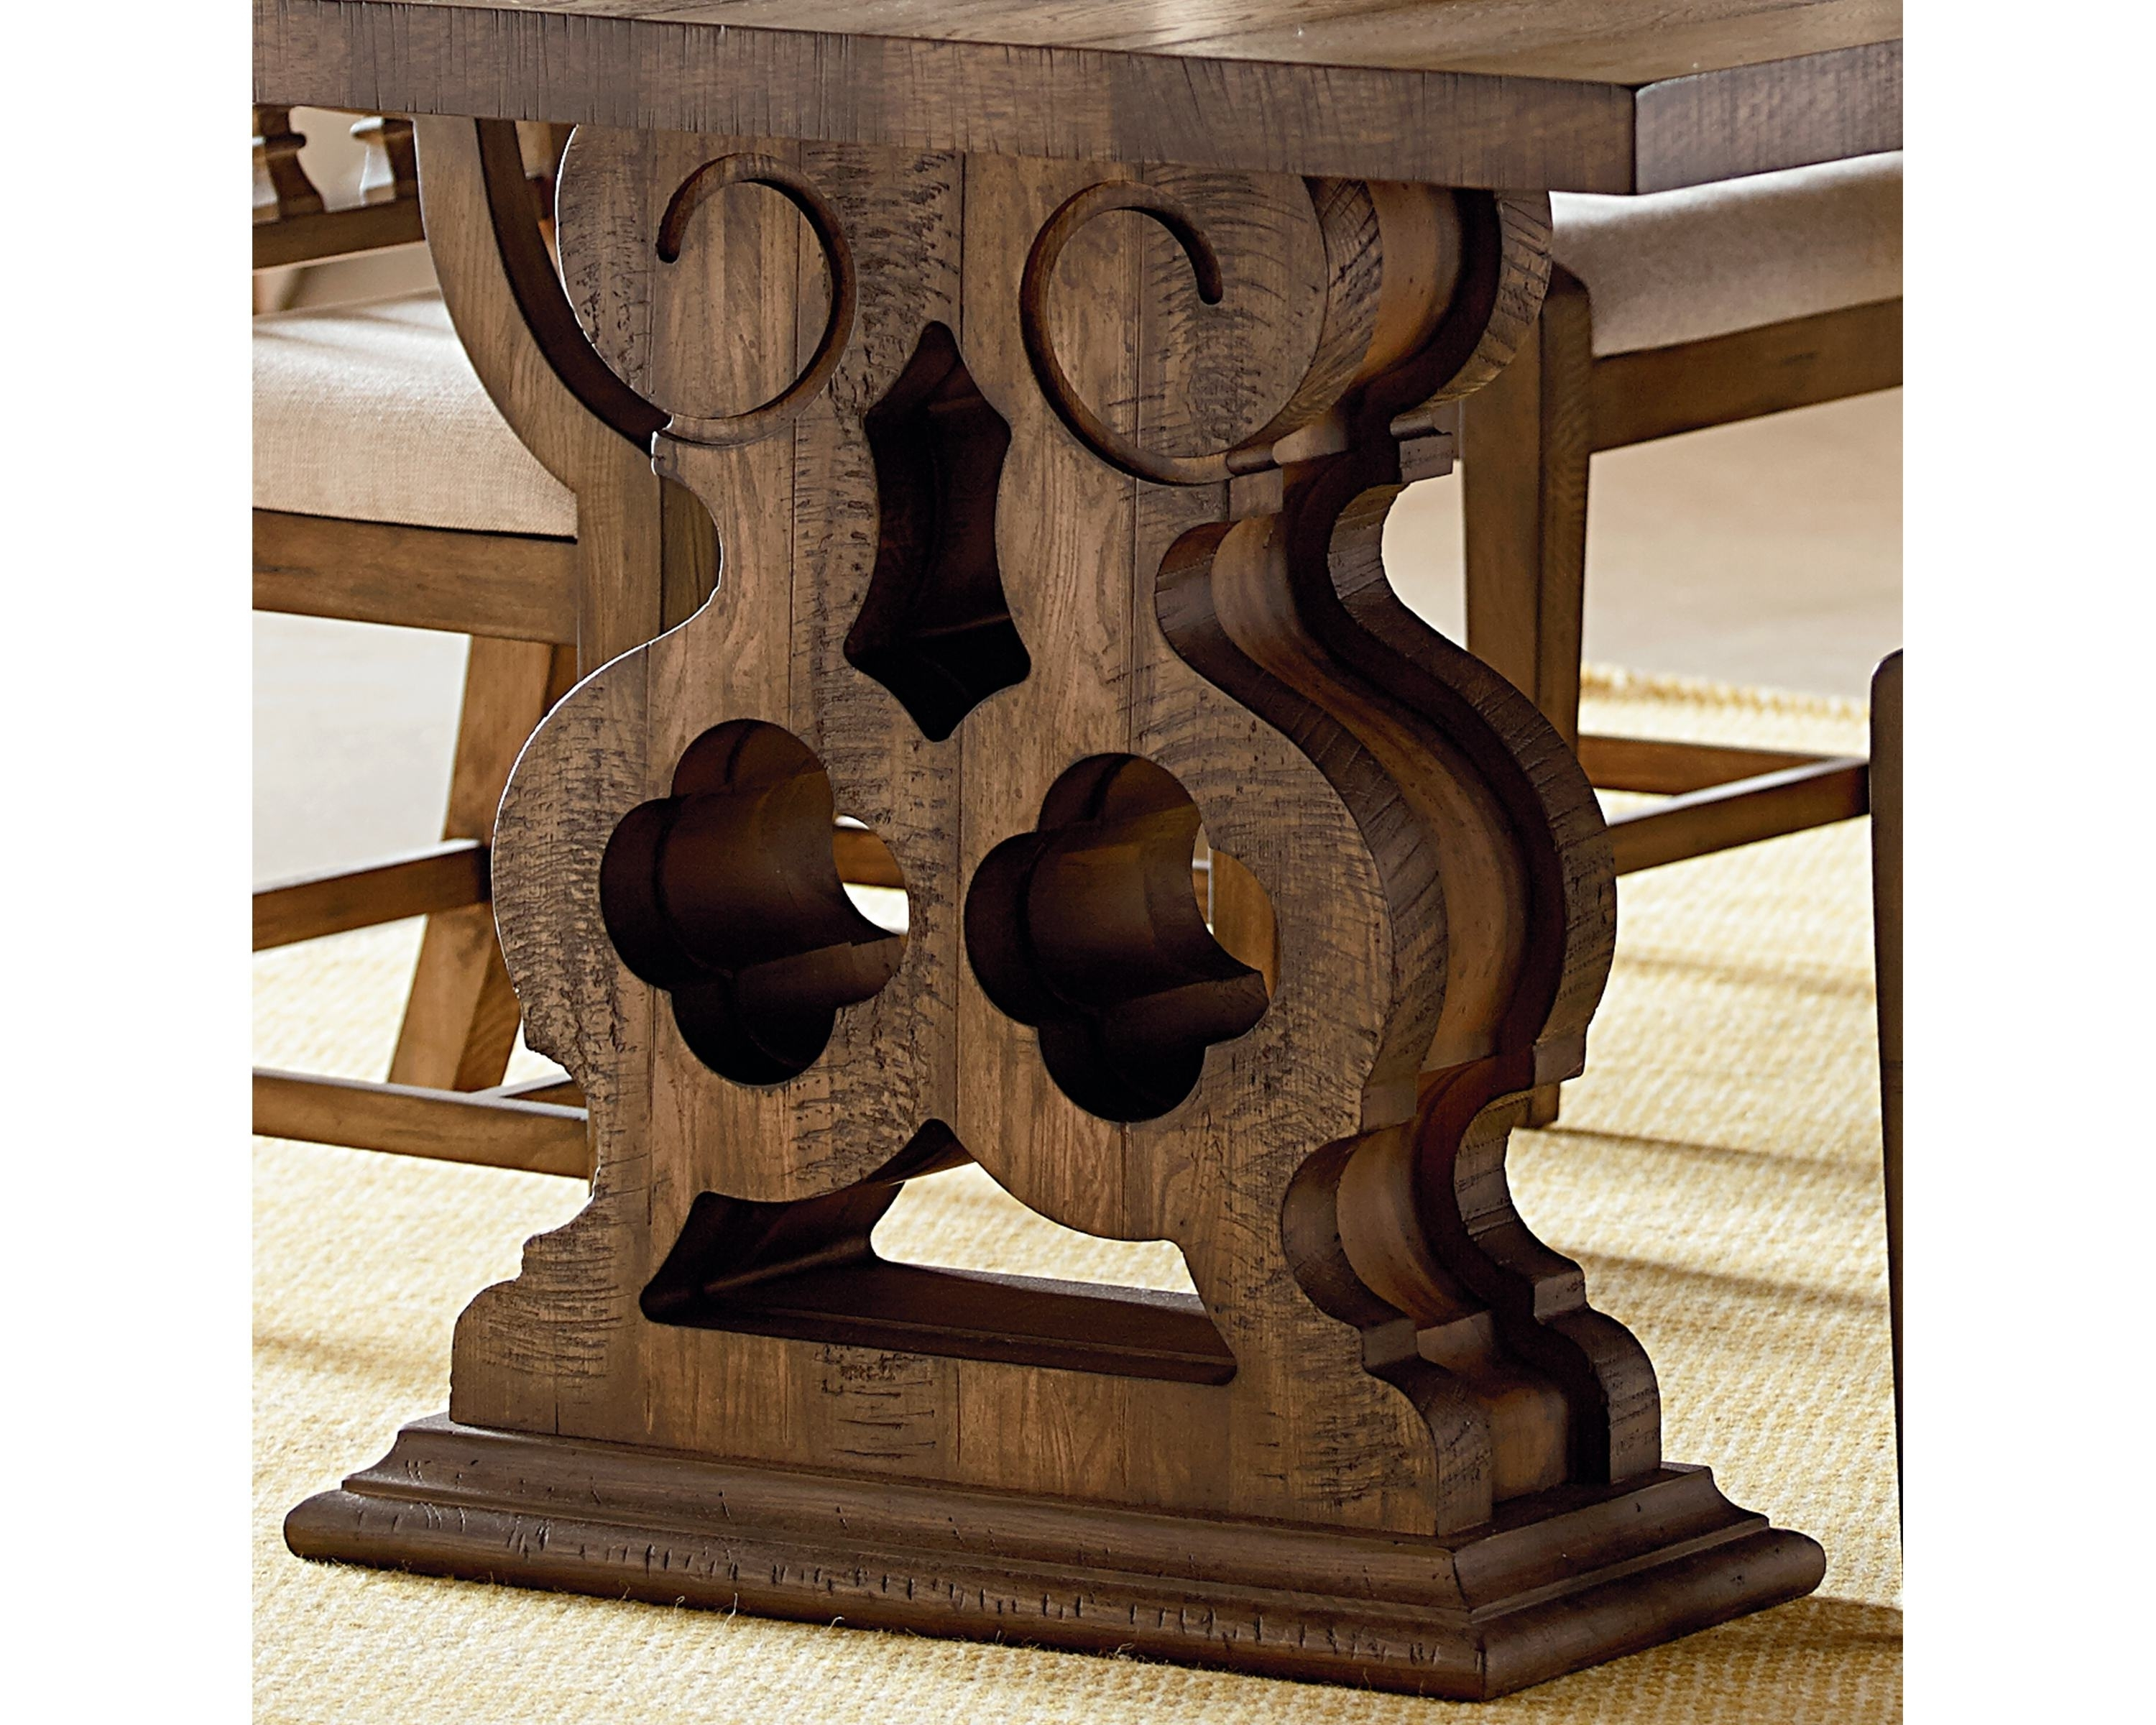 2017 Magnolia Home Double Pedestal Dining Tables intended for Double Pedestal Dining Table - Magnolia Home